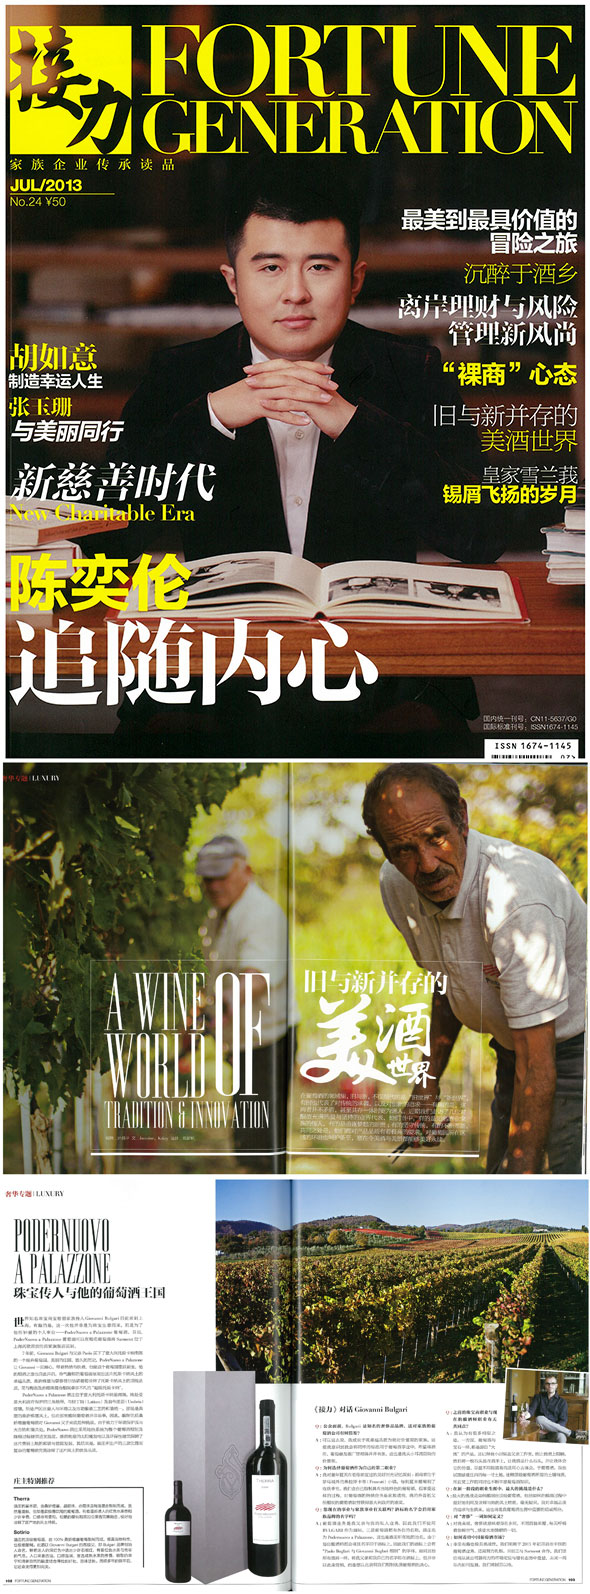 Fortune_Generation_July_2013